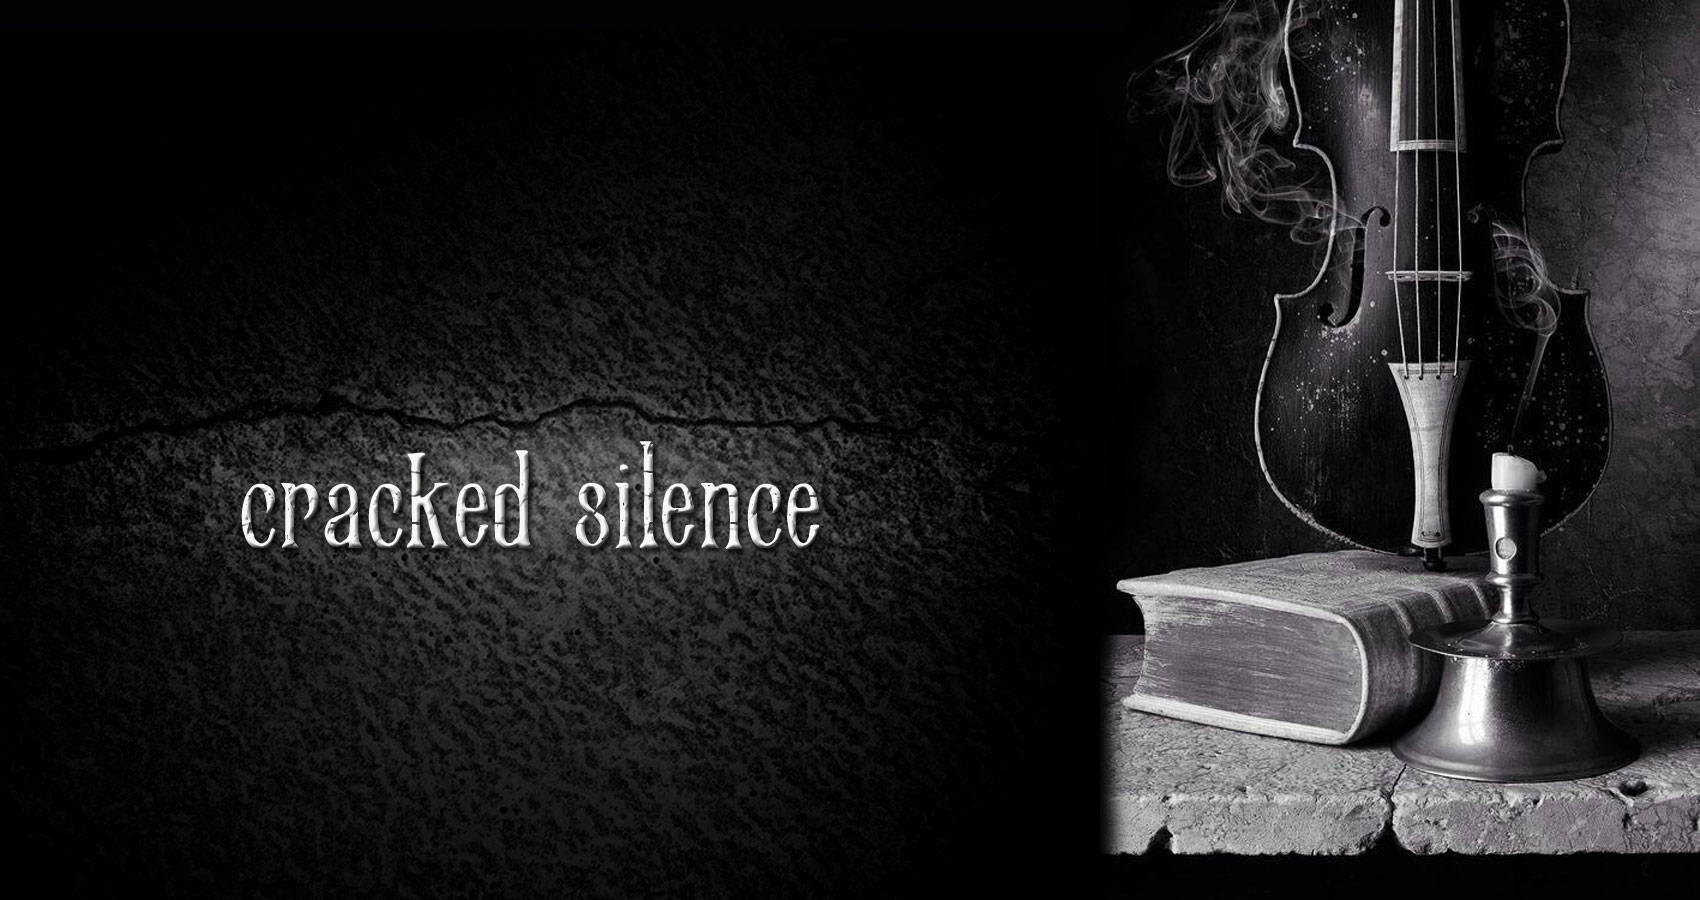 Cracked silence by Rhaster at Spillwords.com